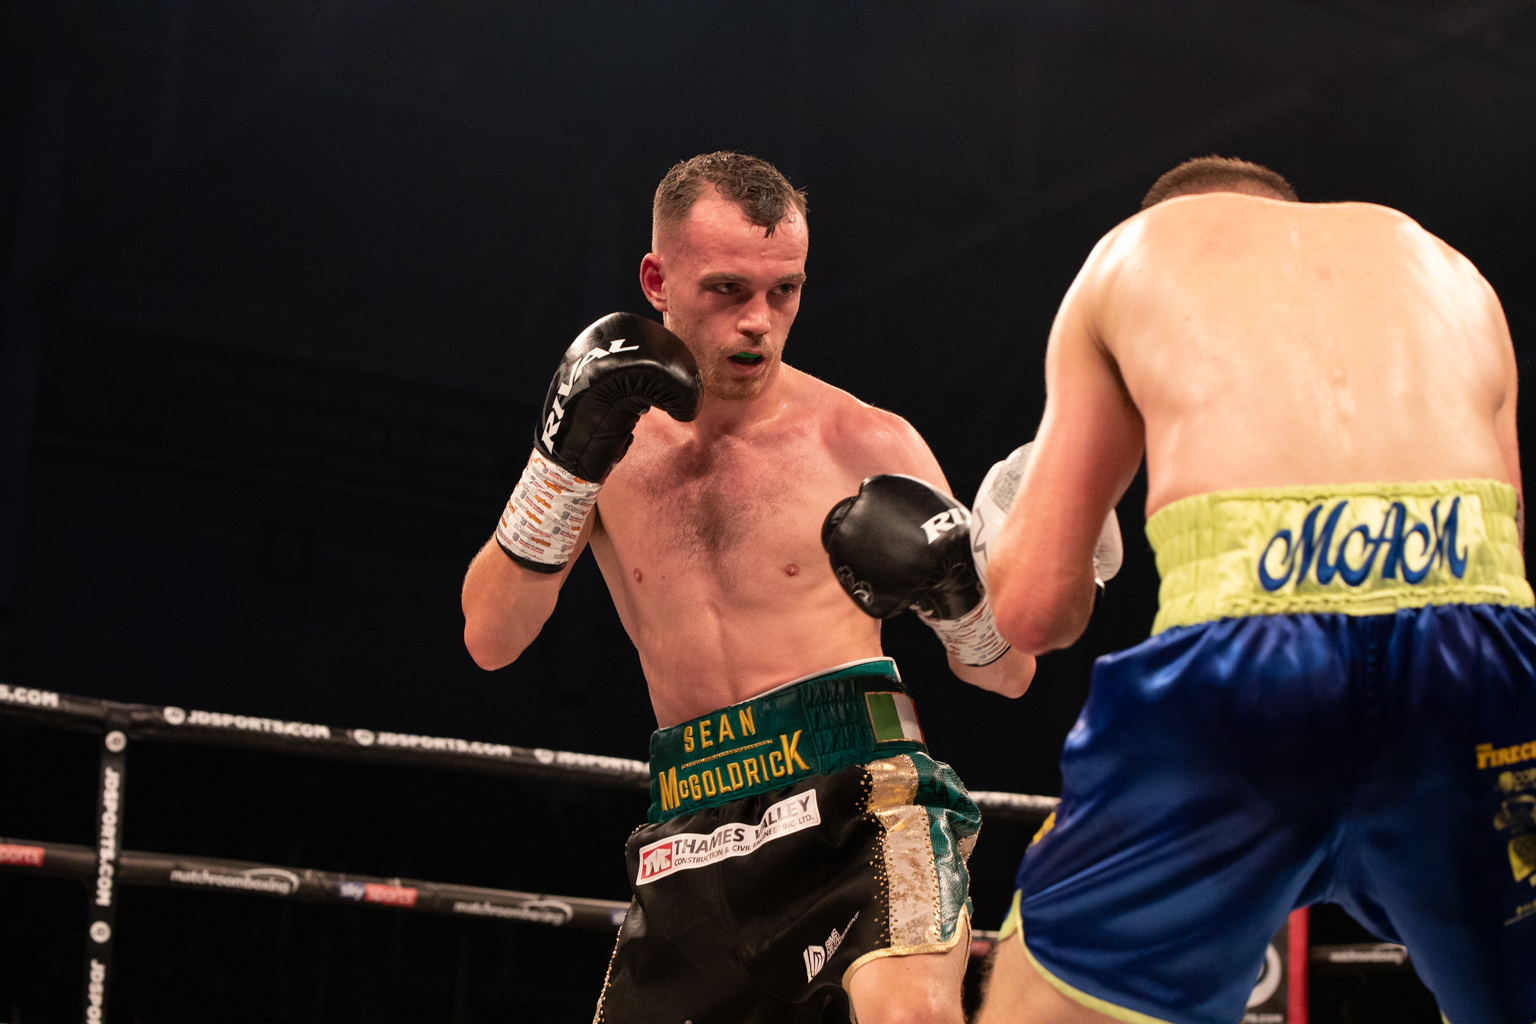 NEW CHALLENGE: Sean McGoldrick, left, beat Dylan McDonagh in his last fight. Picture: www.liamhartery.com